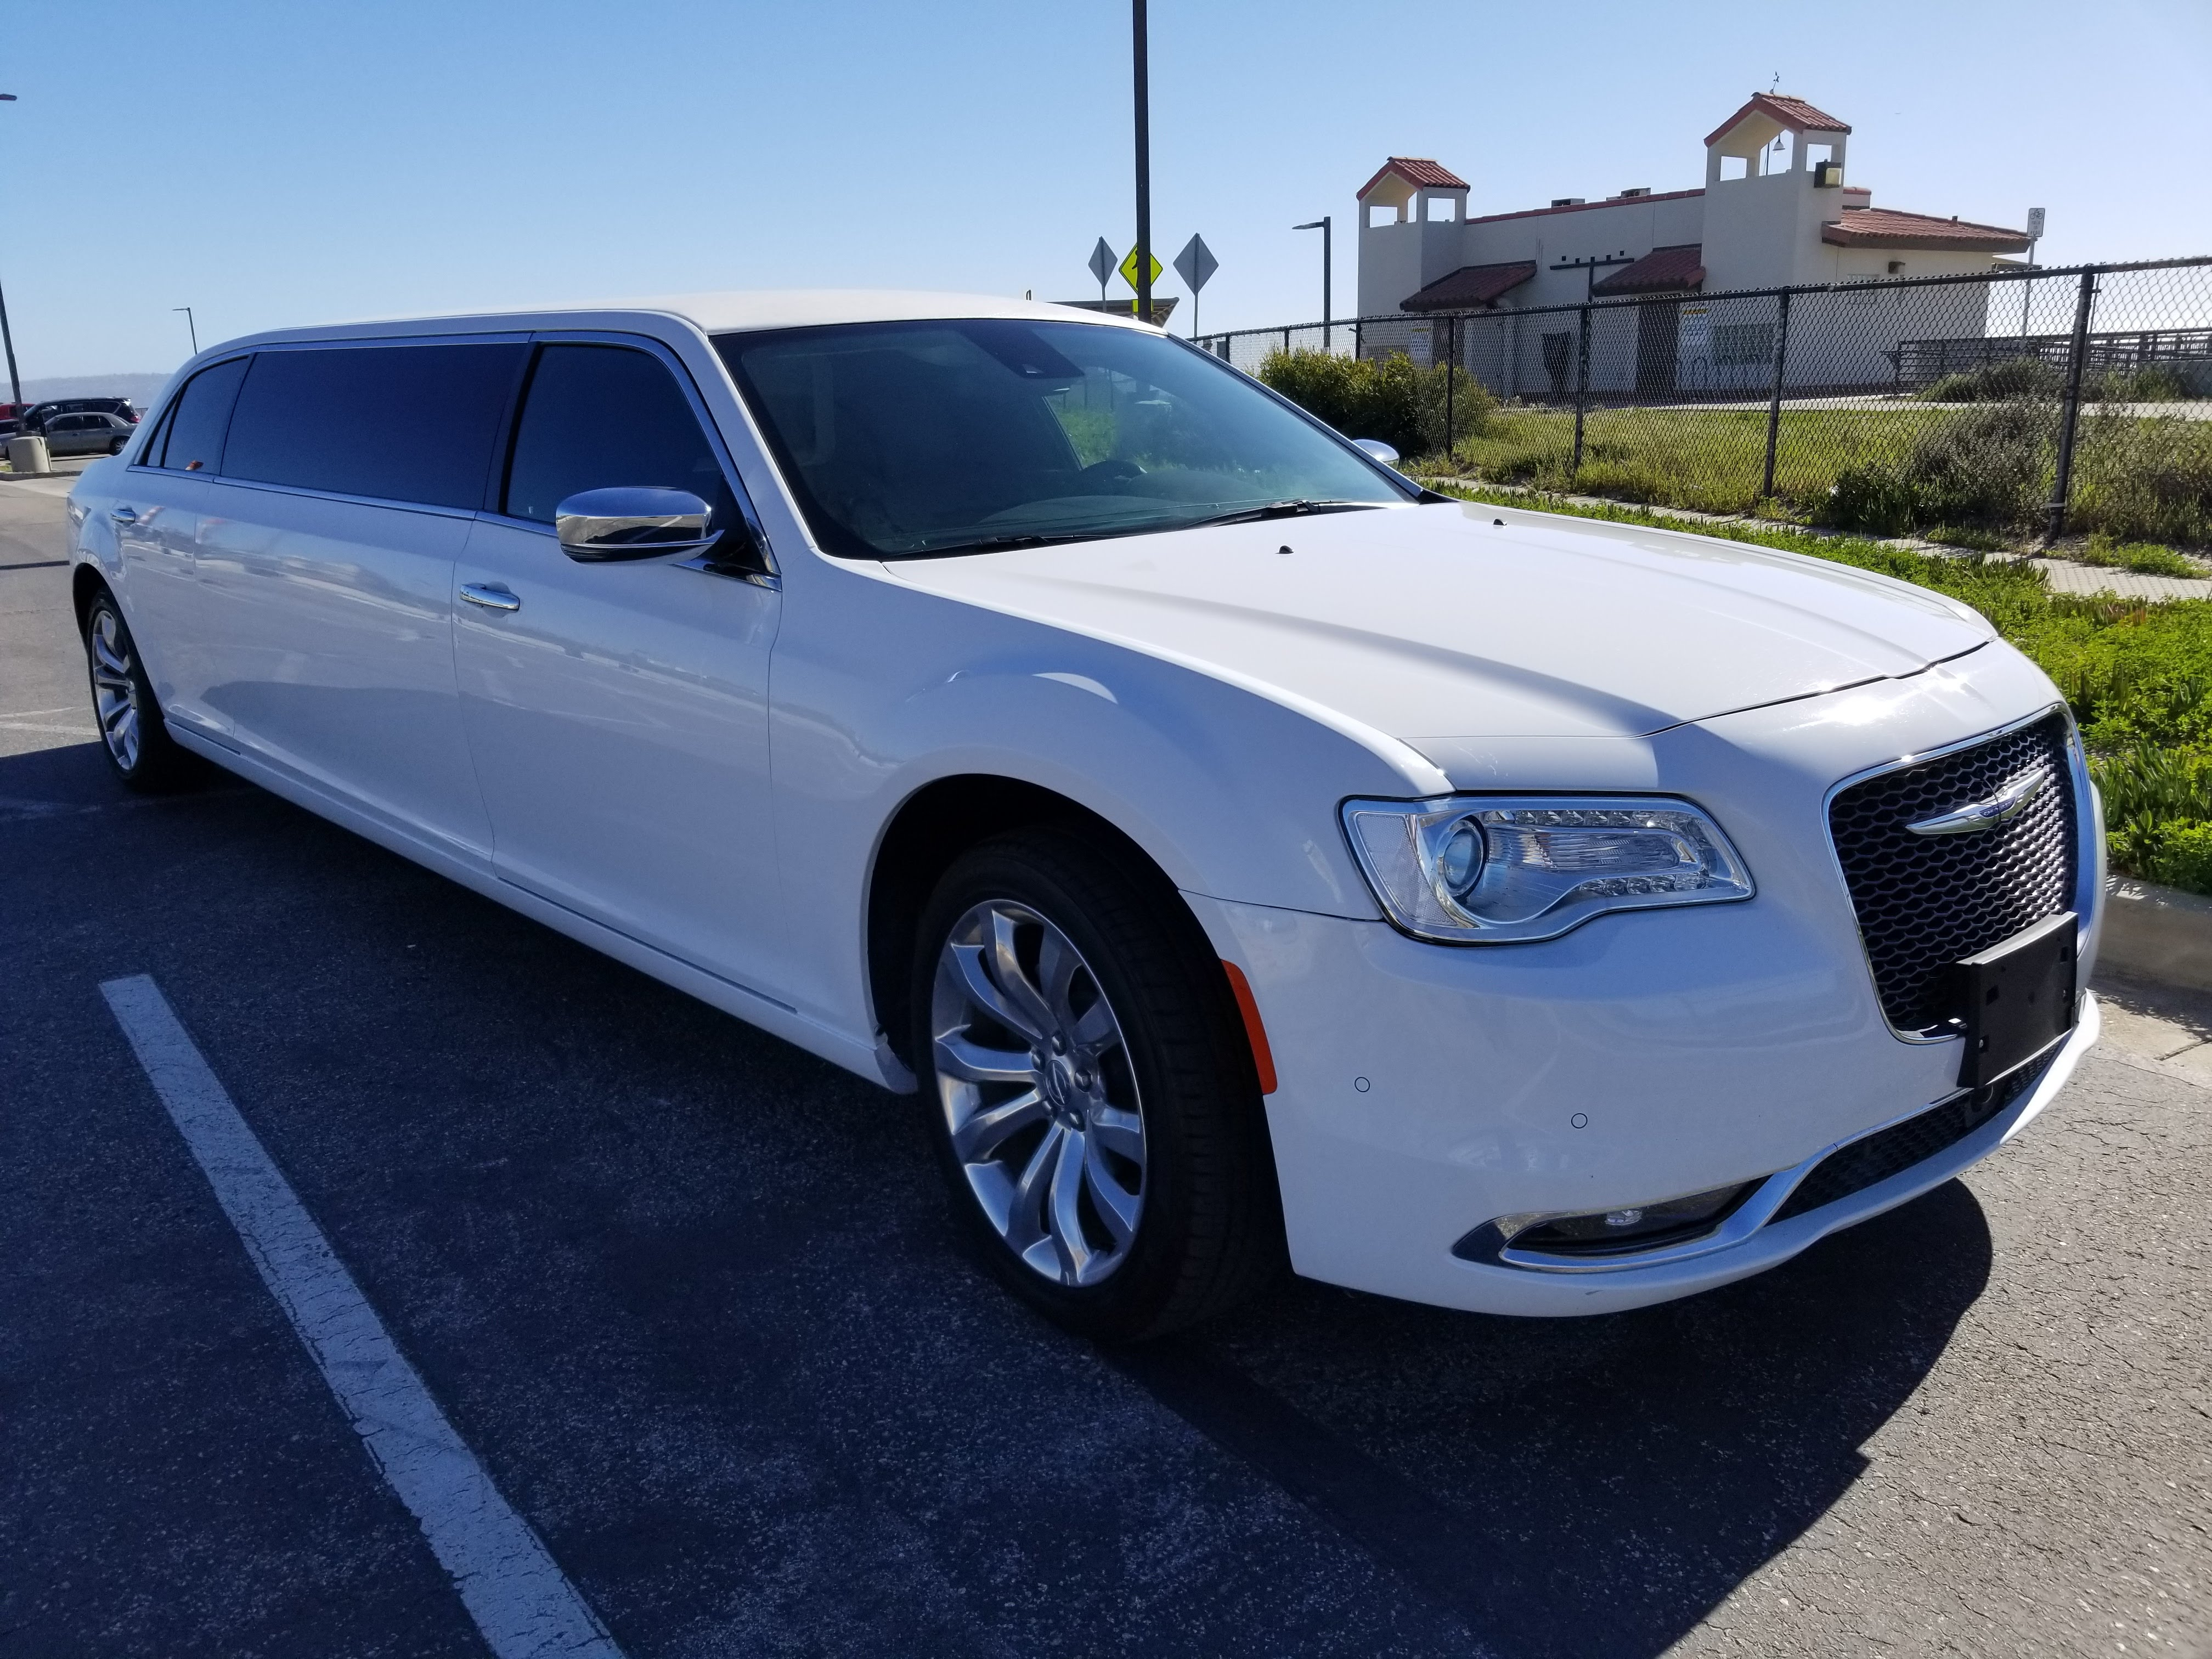 Used Limos For Sale >> Limos For Sale Easy Limousine Financing Guaranteed